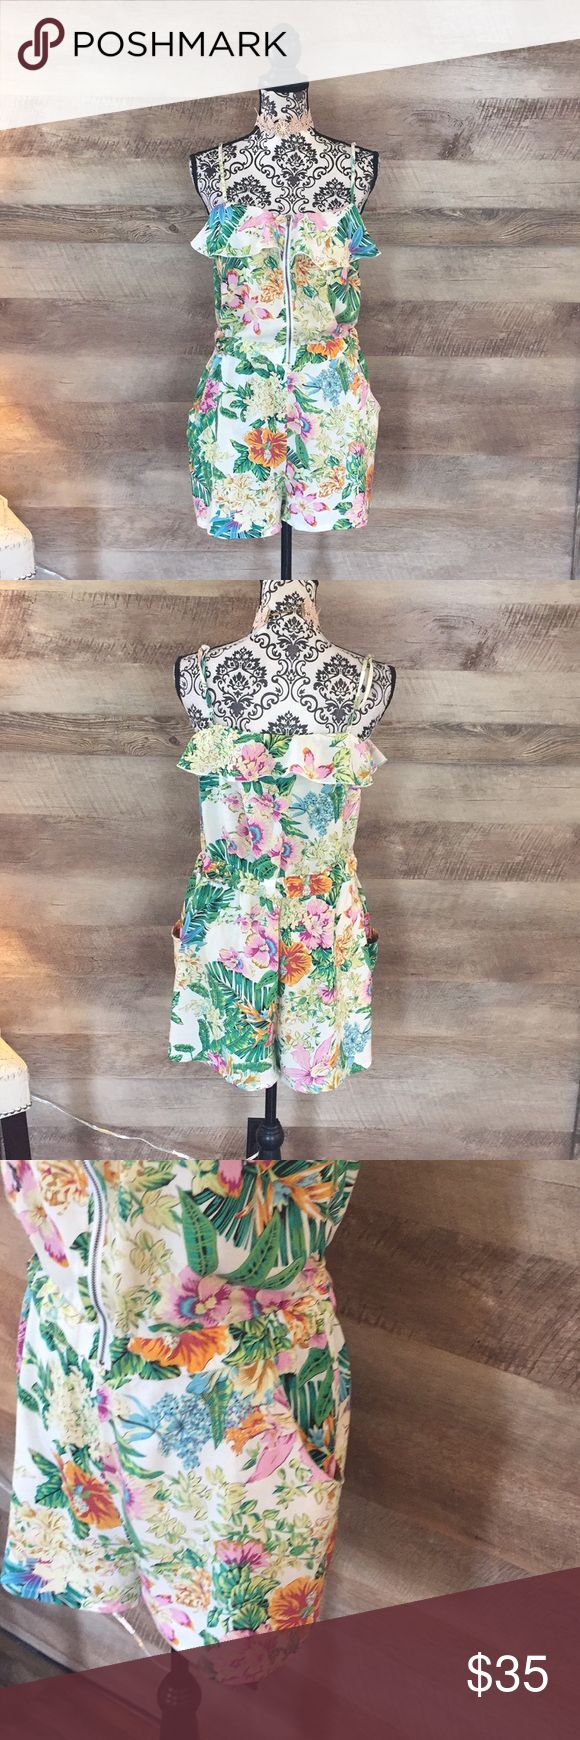 Palm Leaf Floral Zip Up Romper Zip up front. Ruffled bodice. Wide Leg. Palm leaf and floral print. Size XL. Pastel colors. 100% rayon Pants Jumpsuits & Rompers